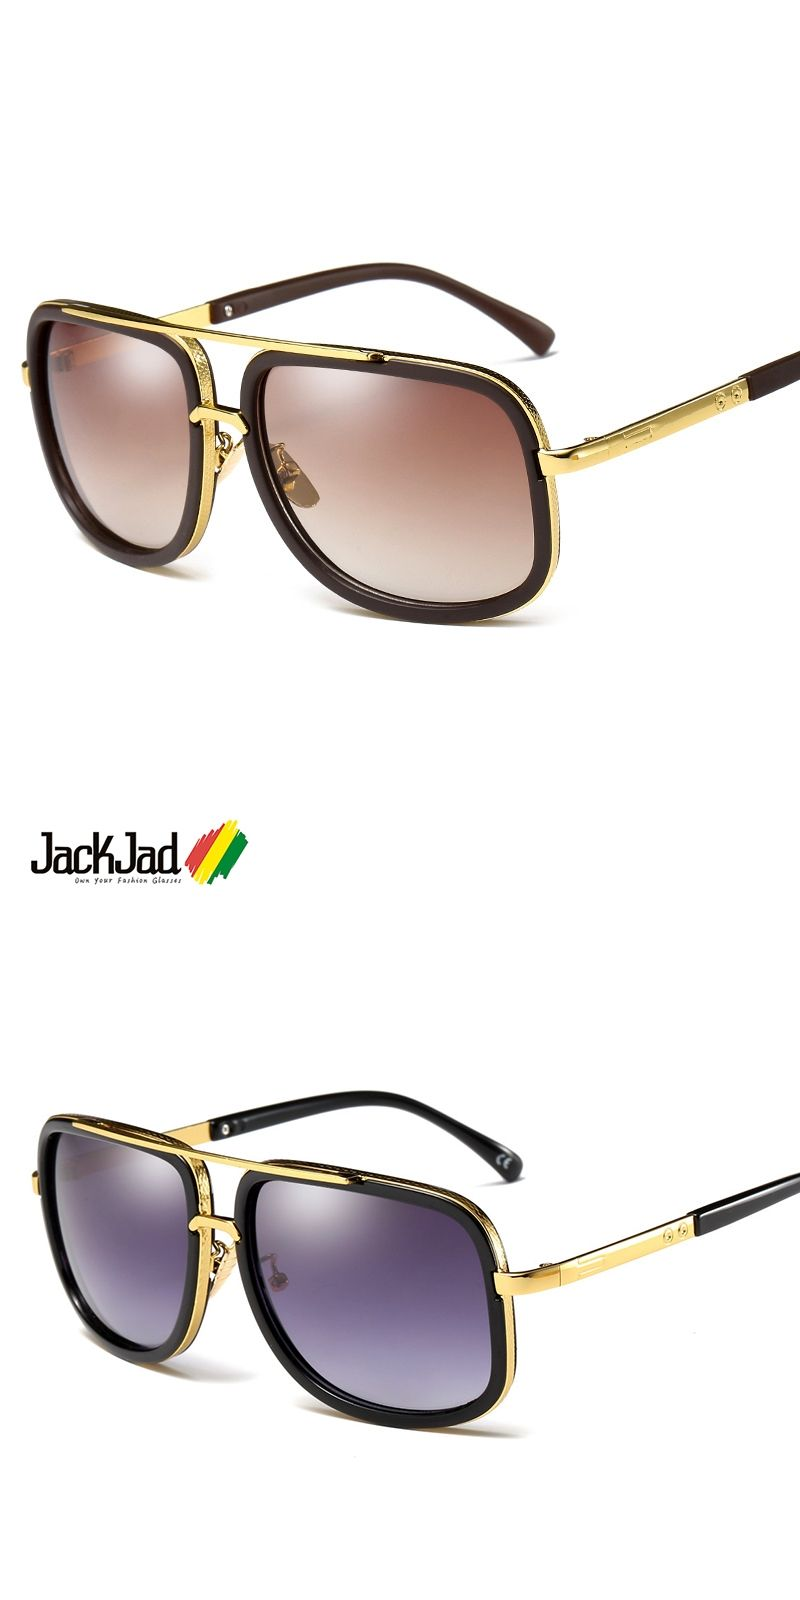 d48762f257 JackJad 2018 Fashion Trend Mach One Adam Lambert Aviator Sunglasses Vintage  Brand Design Sun Glasses Men